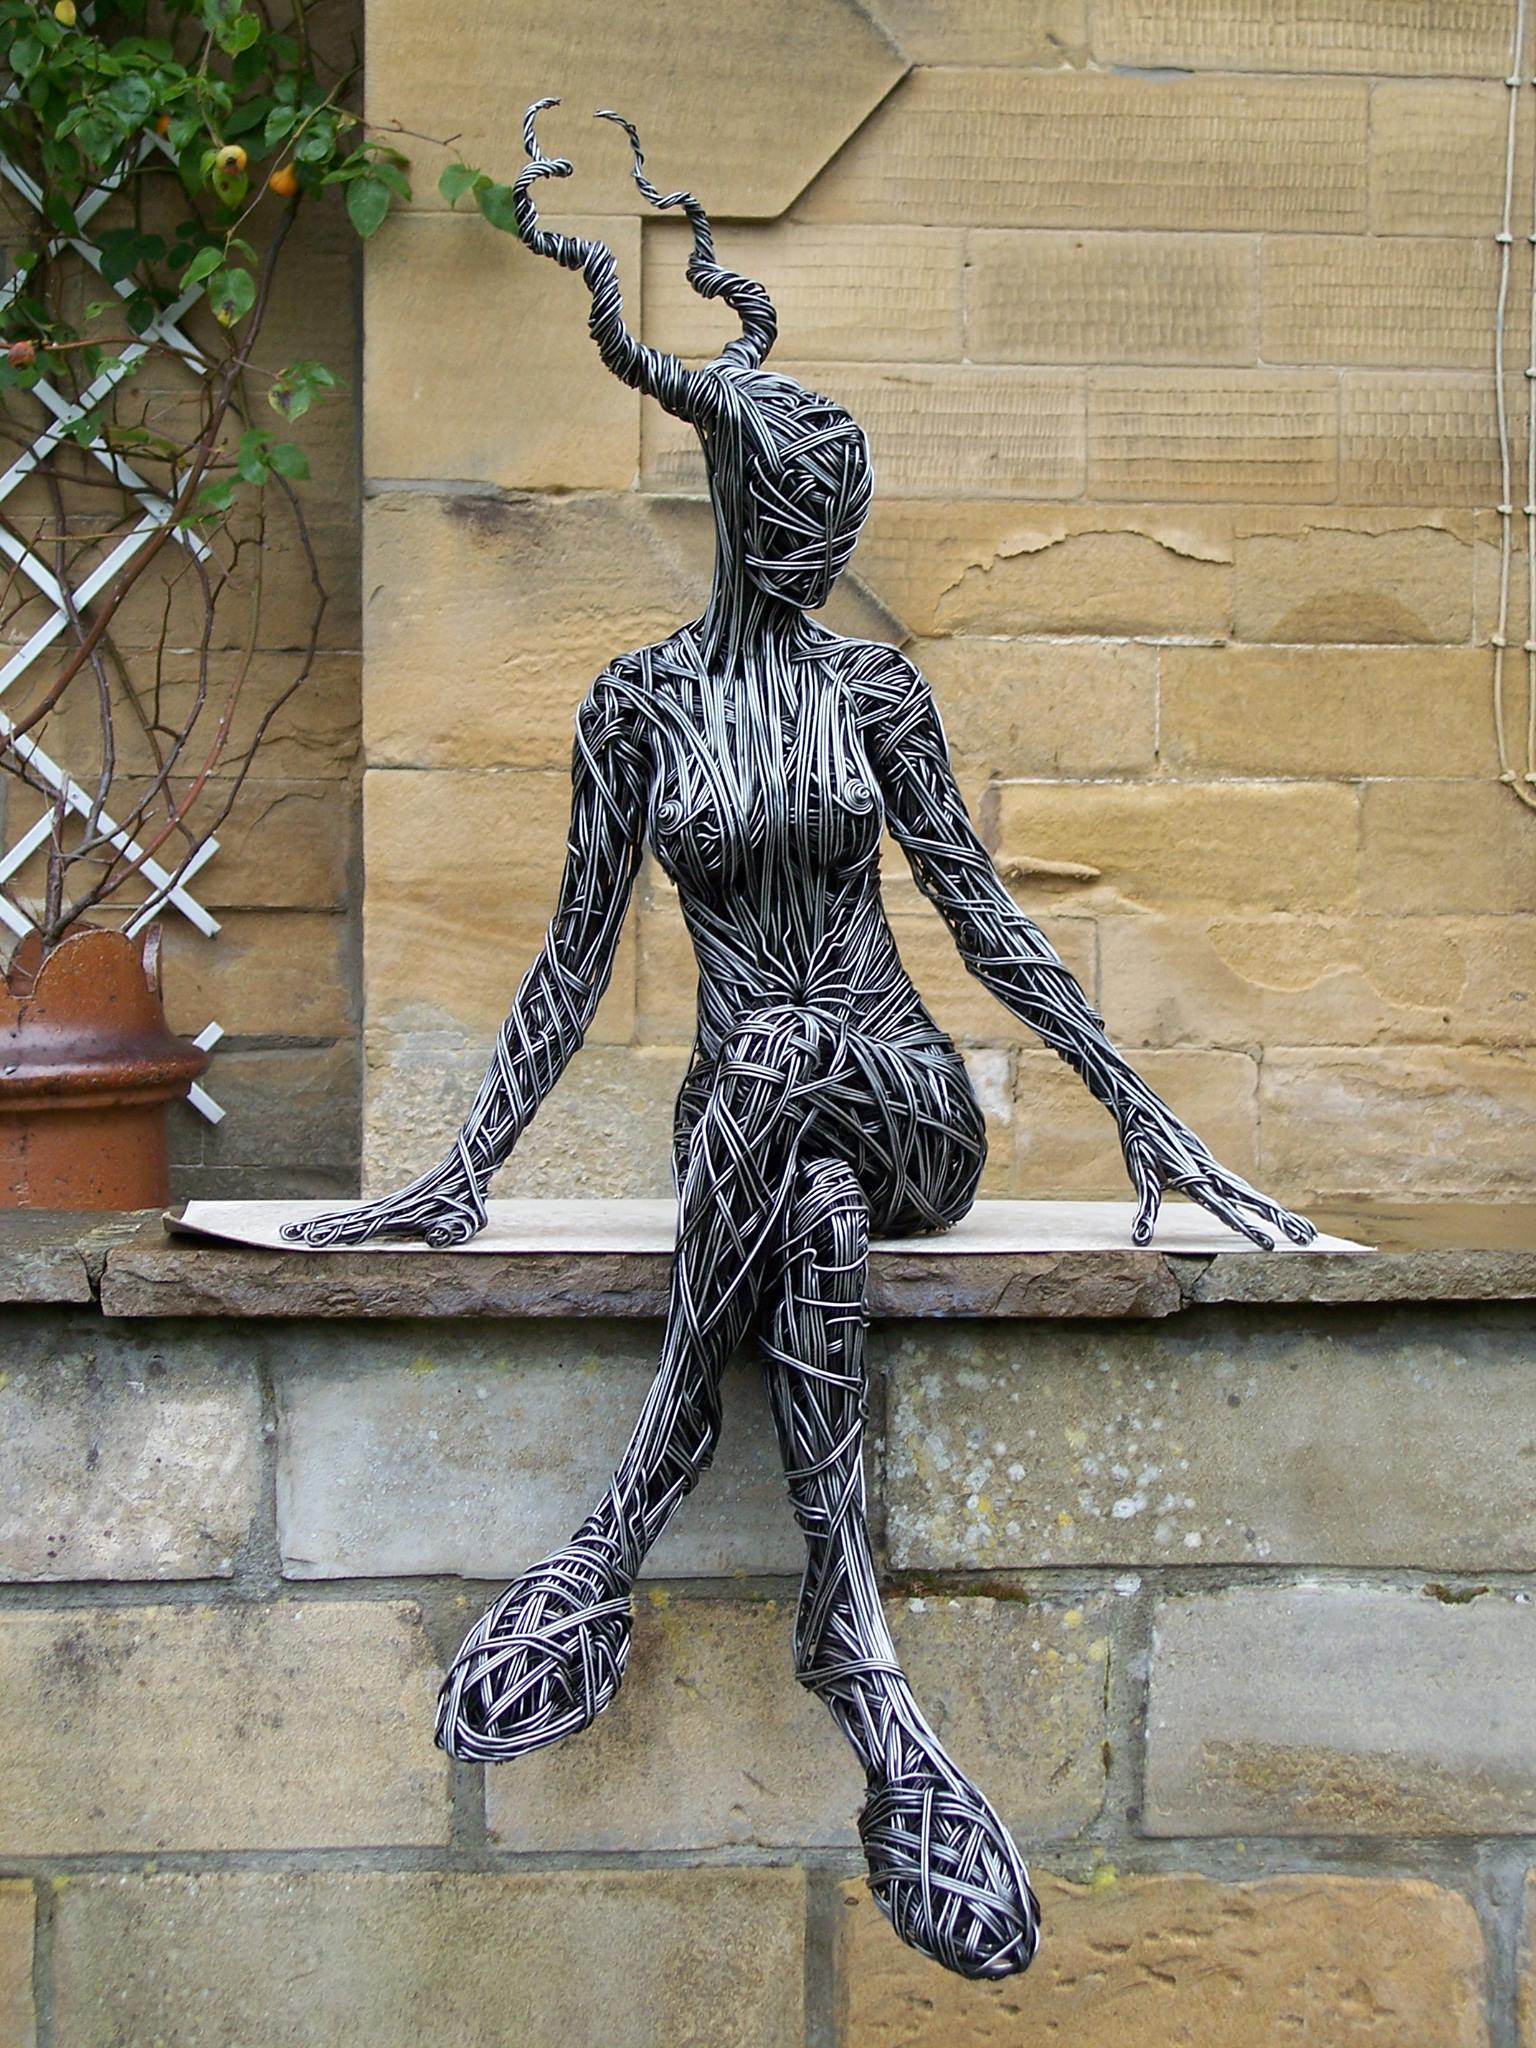 Richard Stainthorp – Female Faun 2006, steel wire